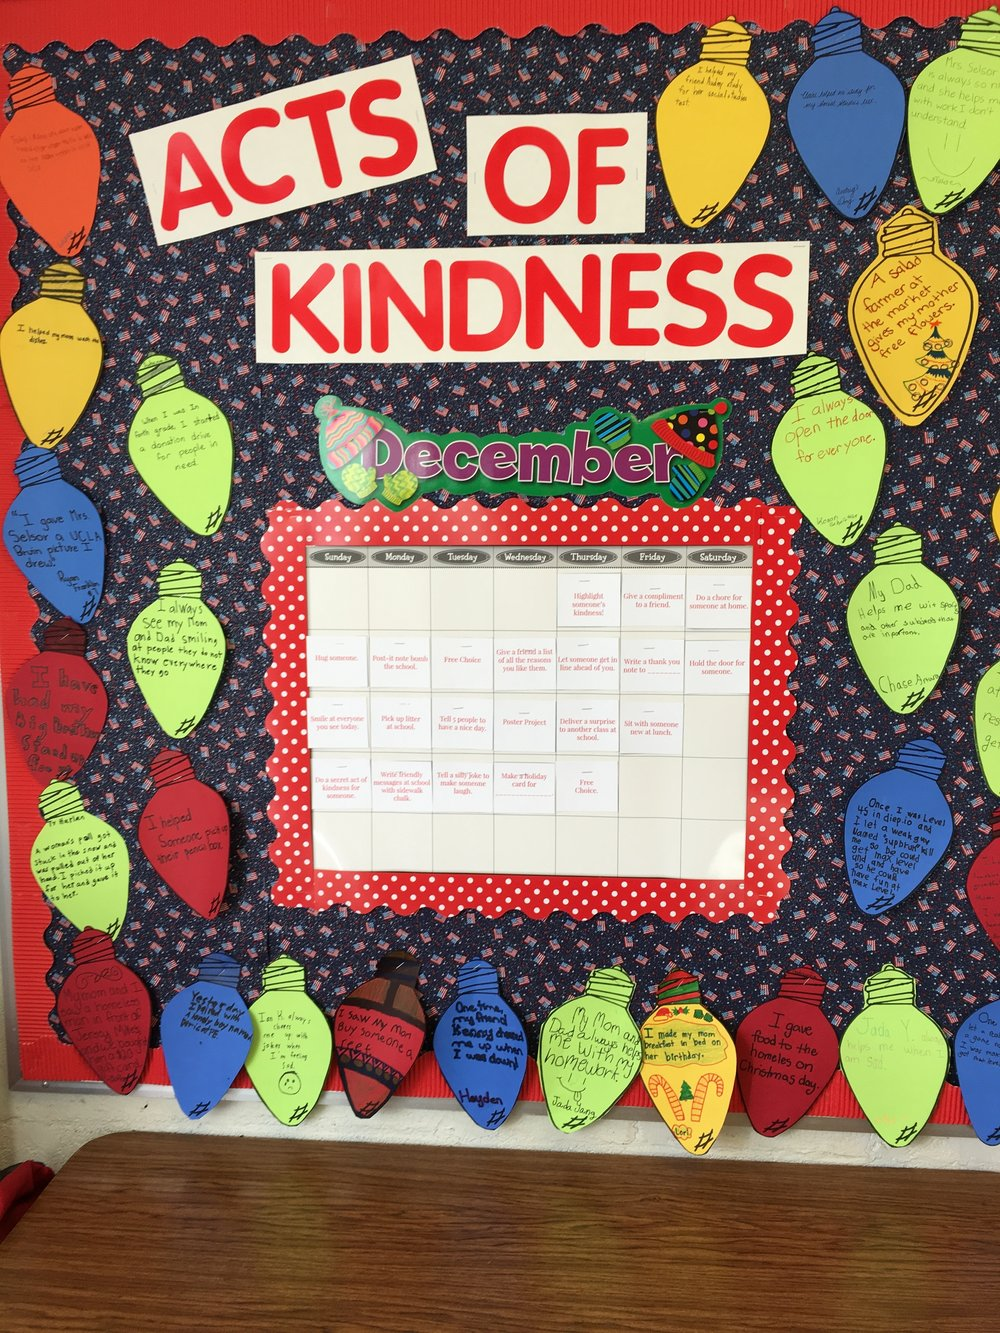 Acts of kindness December calendar.